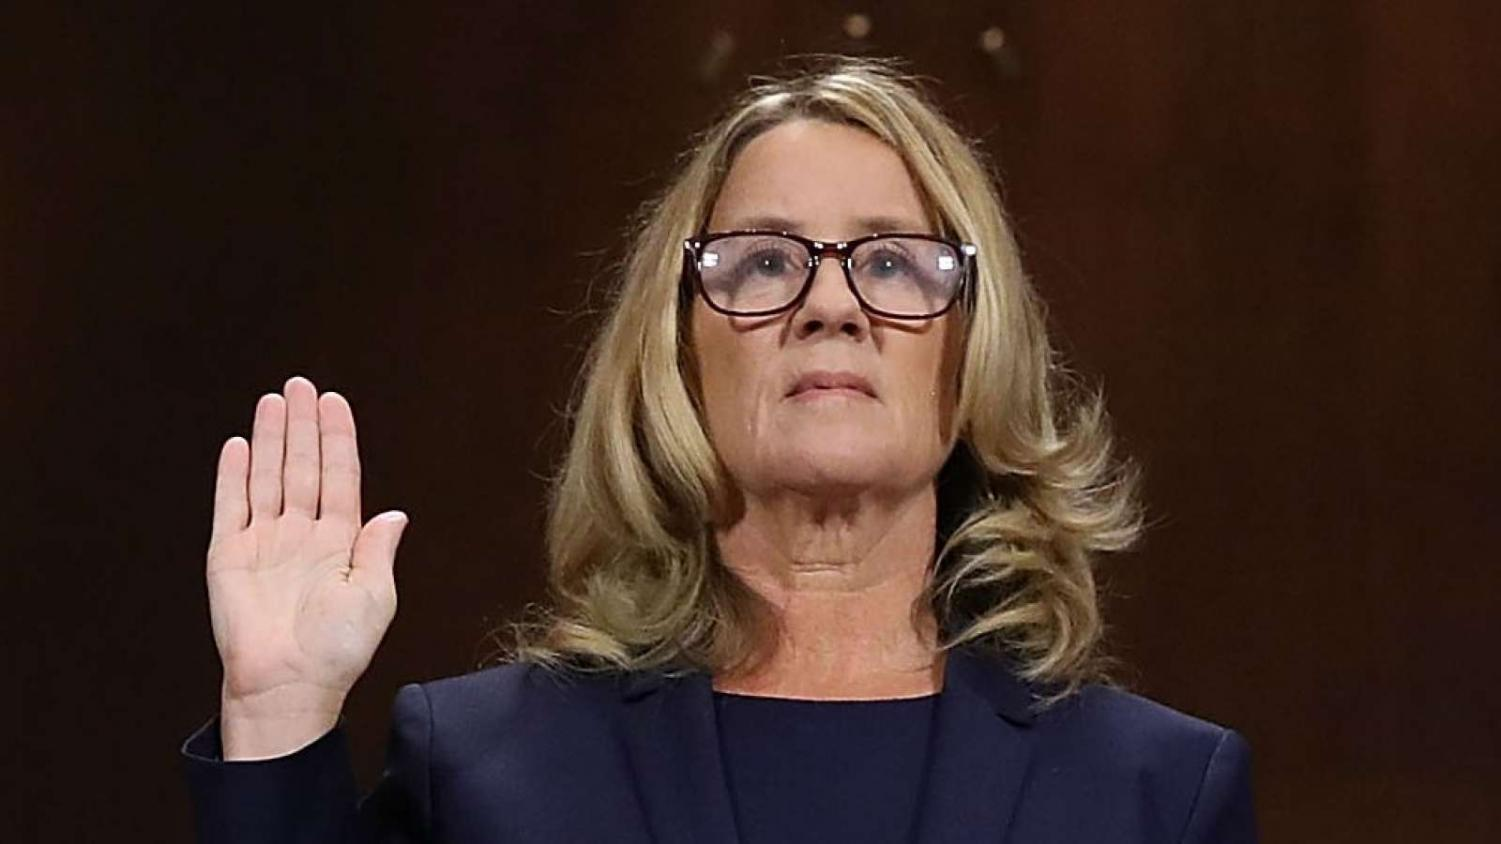 The Senate hearing for Dr. Ford and Judge Kavanaugh has sparked a new social media movement, #WhyIDidn'tReport.